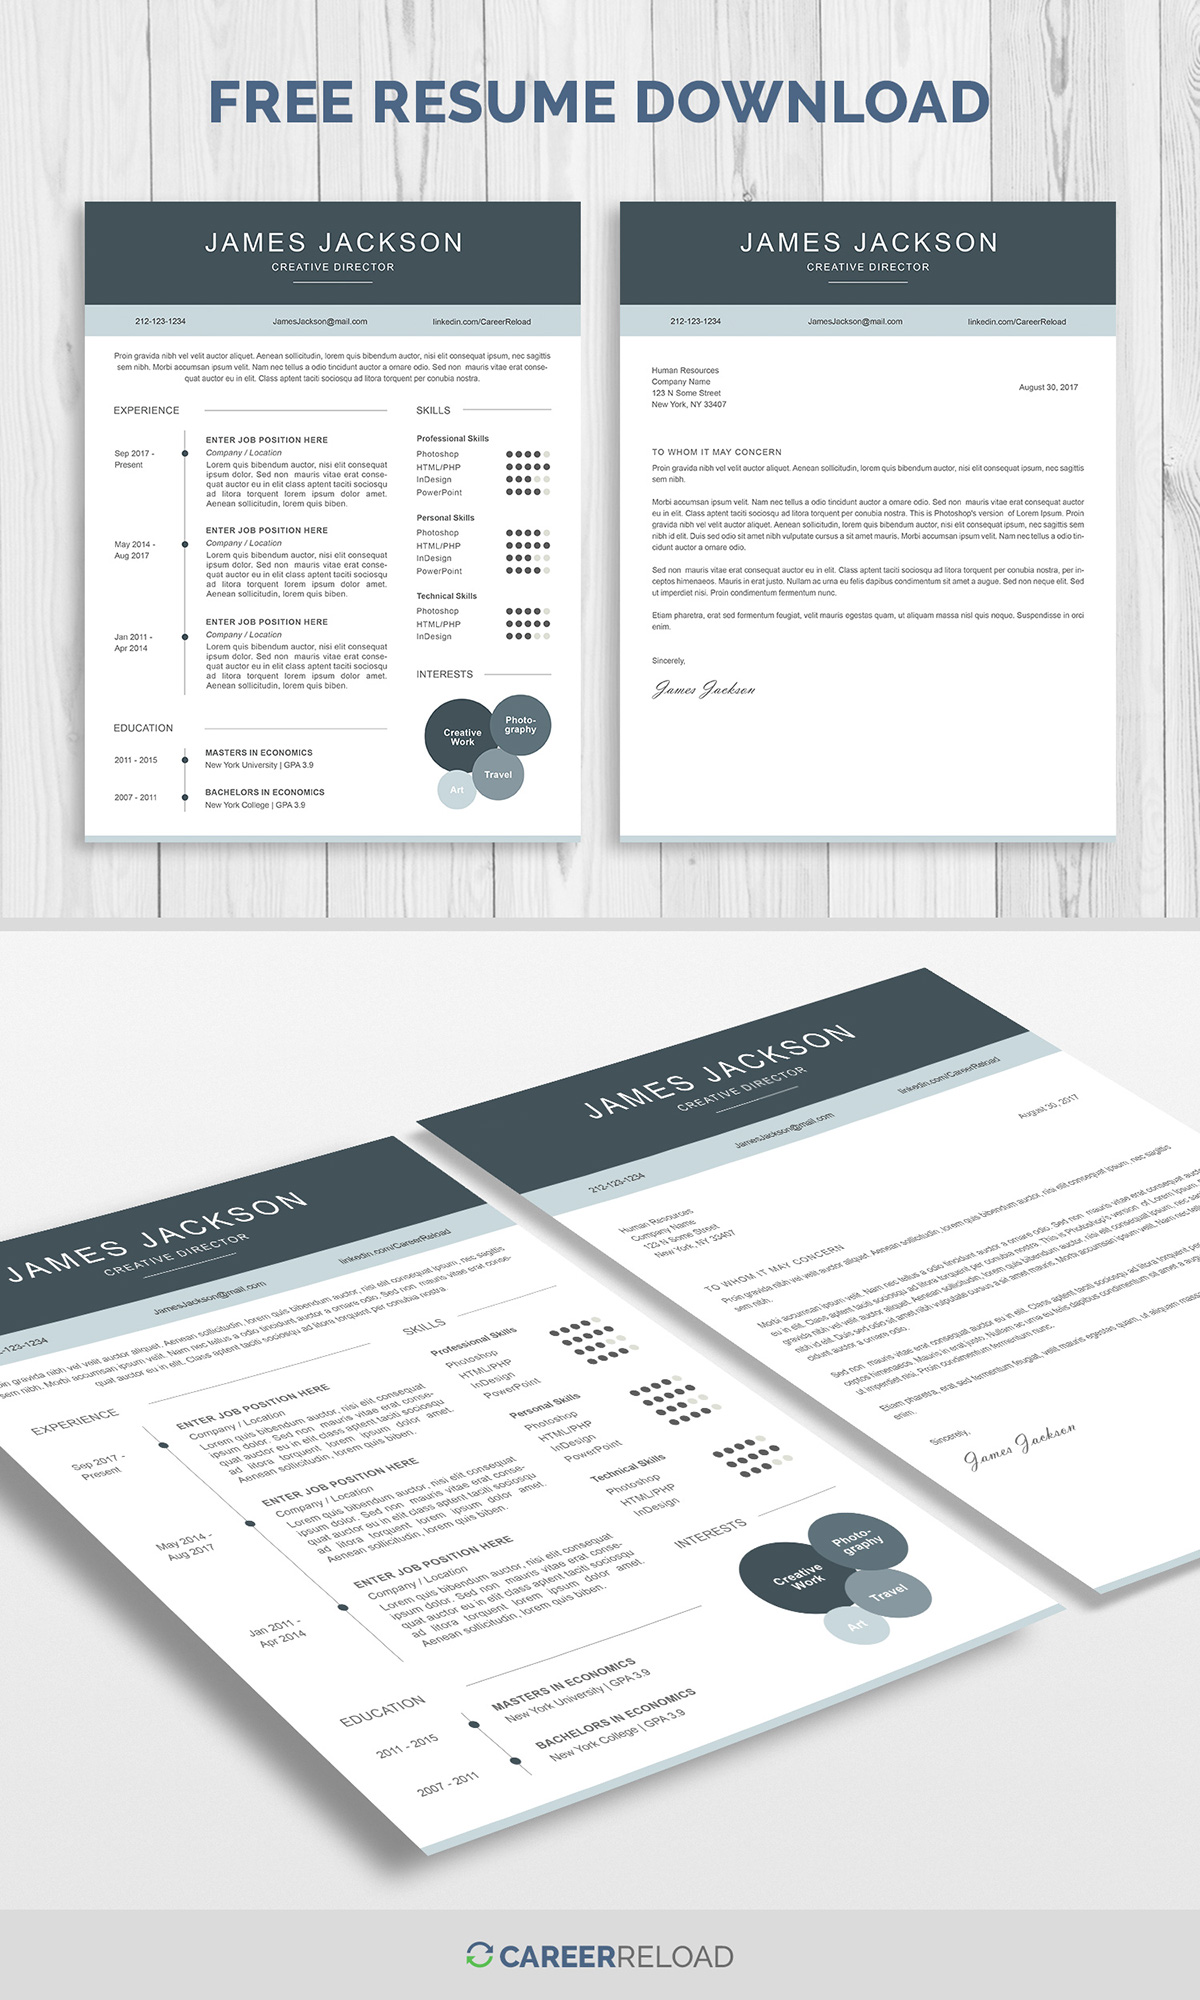 free resume template and cover letter on pantone canvas gallery matching templates apply Resume Free Matching Cover Letter And Resume Templates